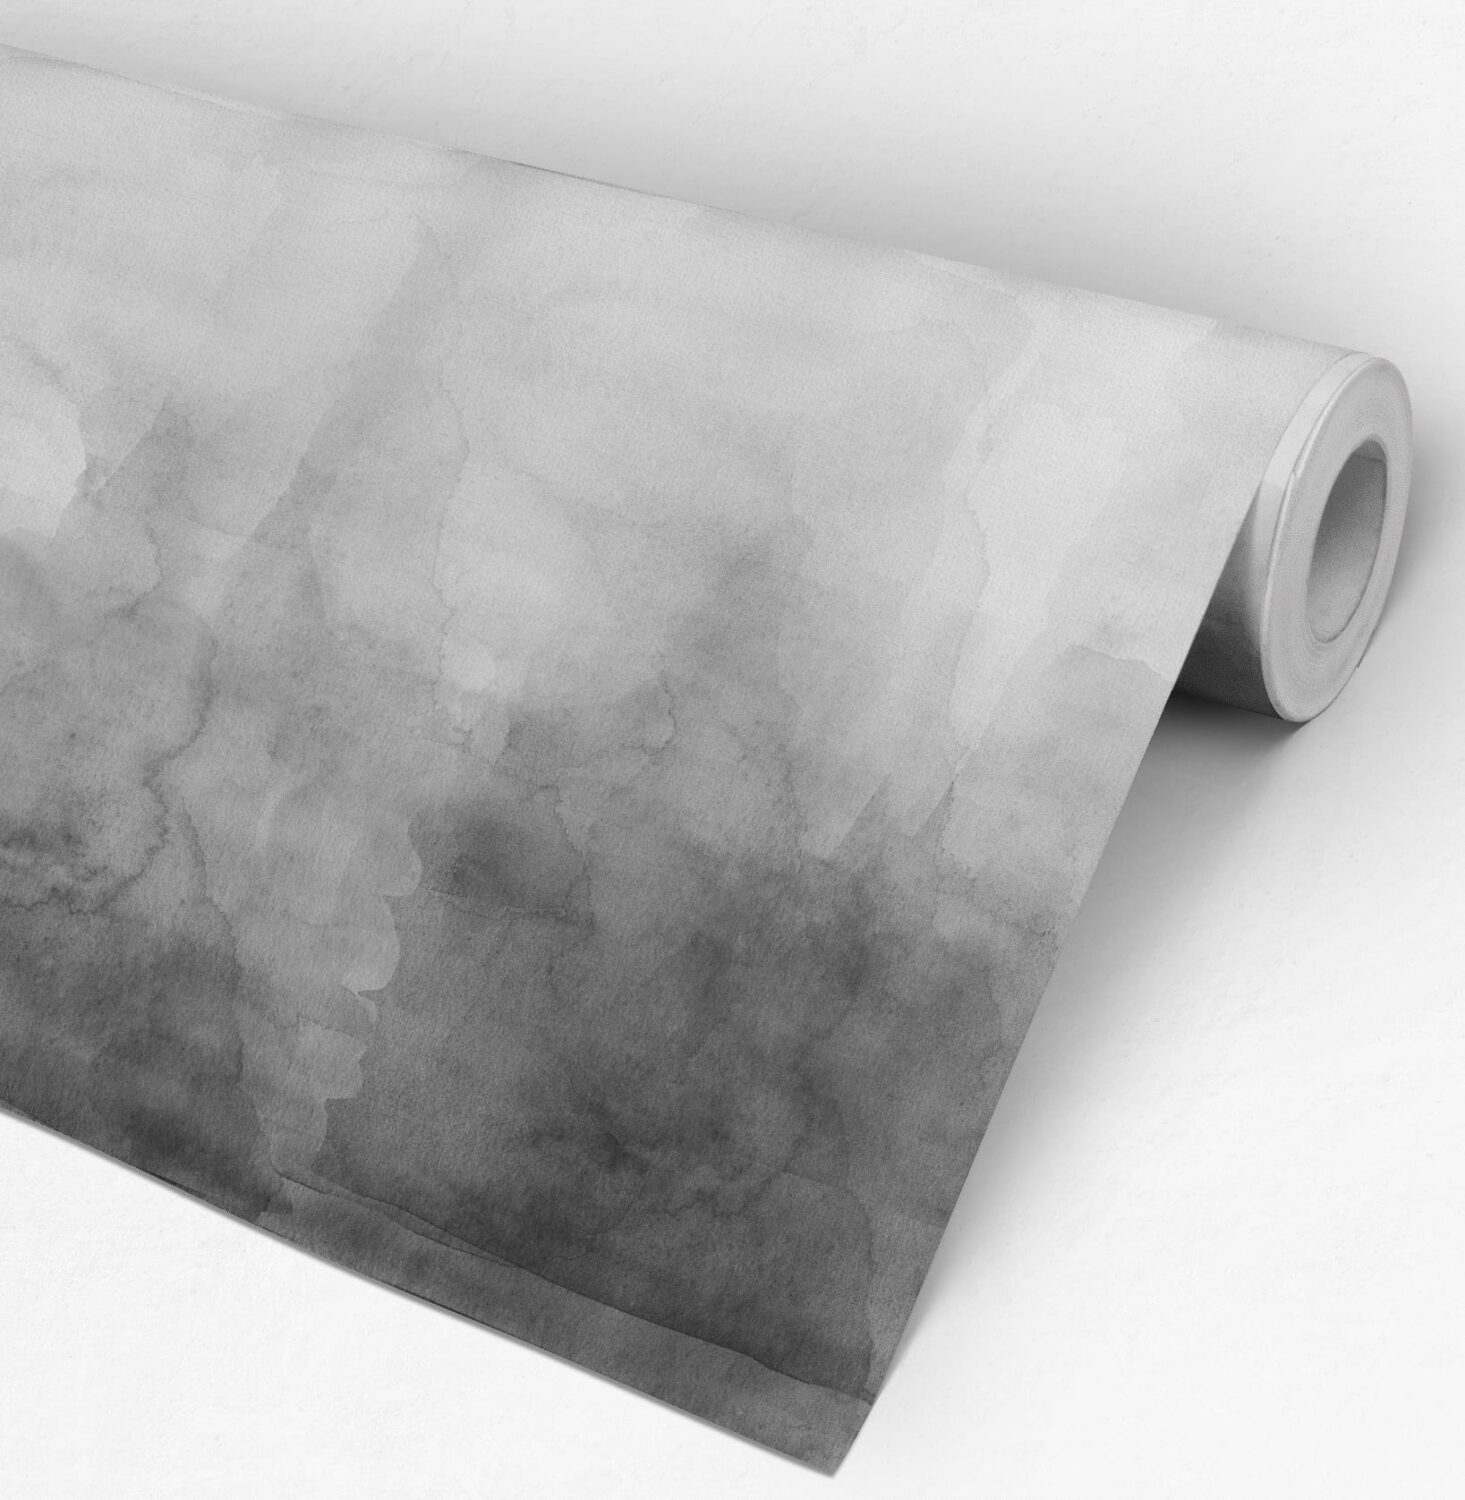 Beautiful Wallpaper Grey Watercolor - Grayscale-Ombre-Watercolor-Wallpaper-Roll  Photograph_7862100.jpg